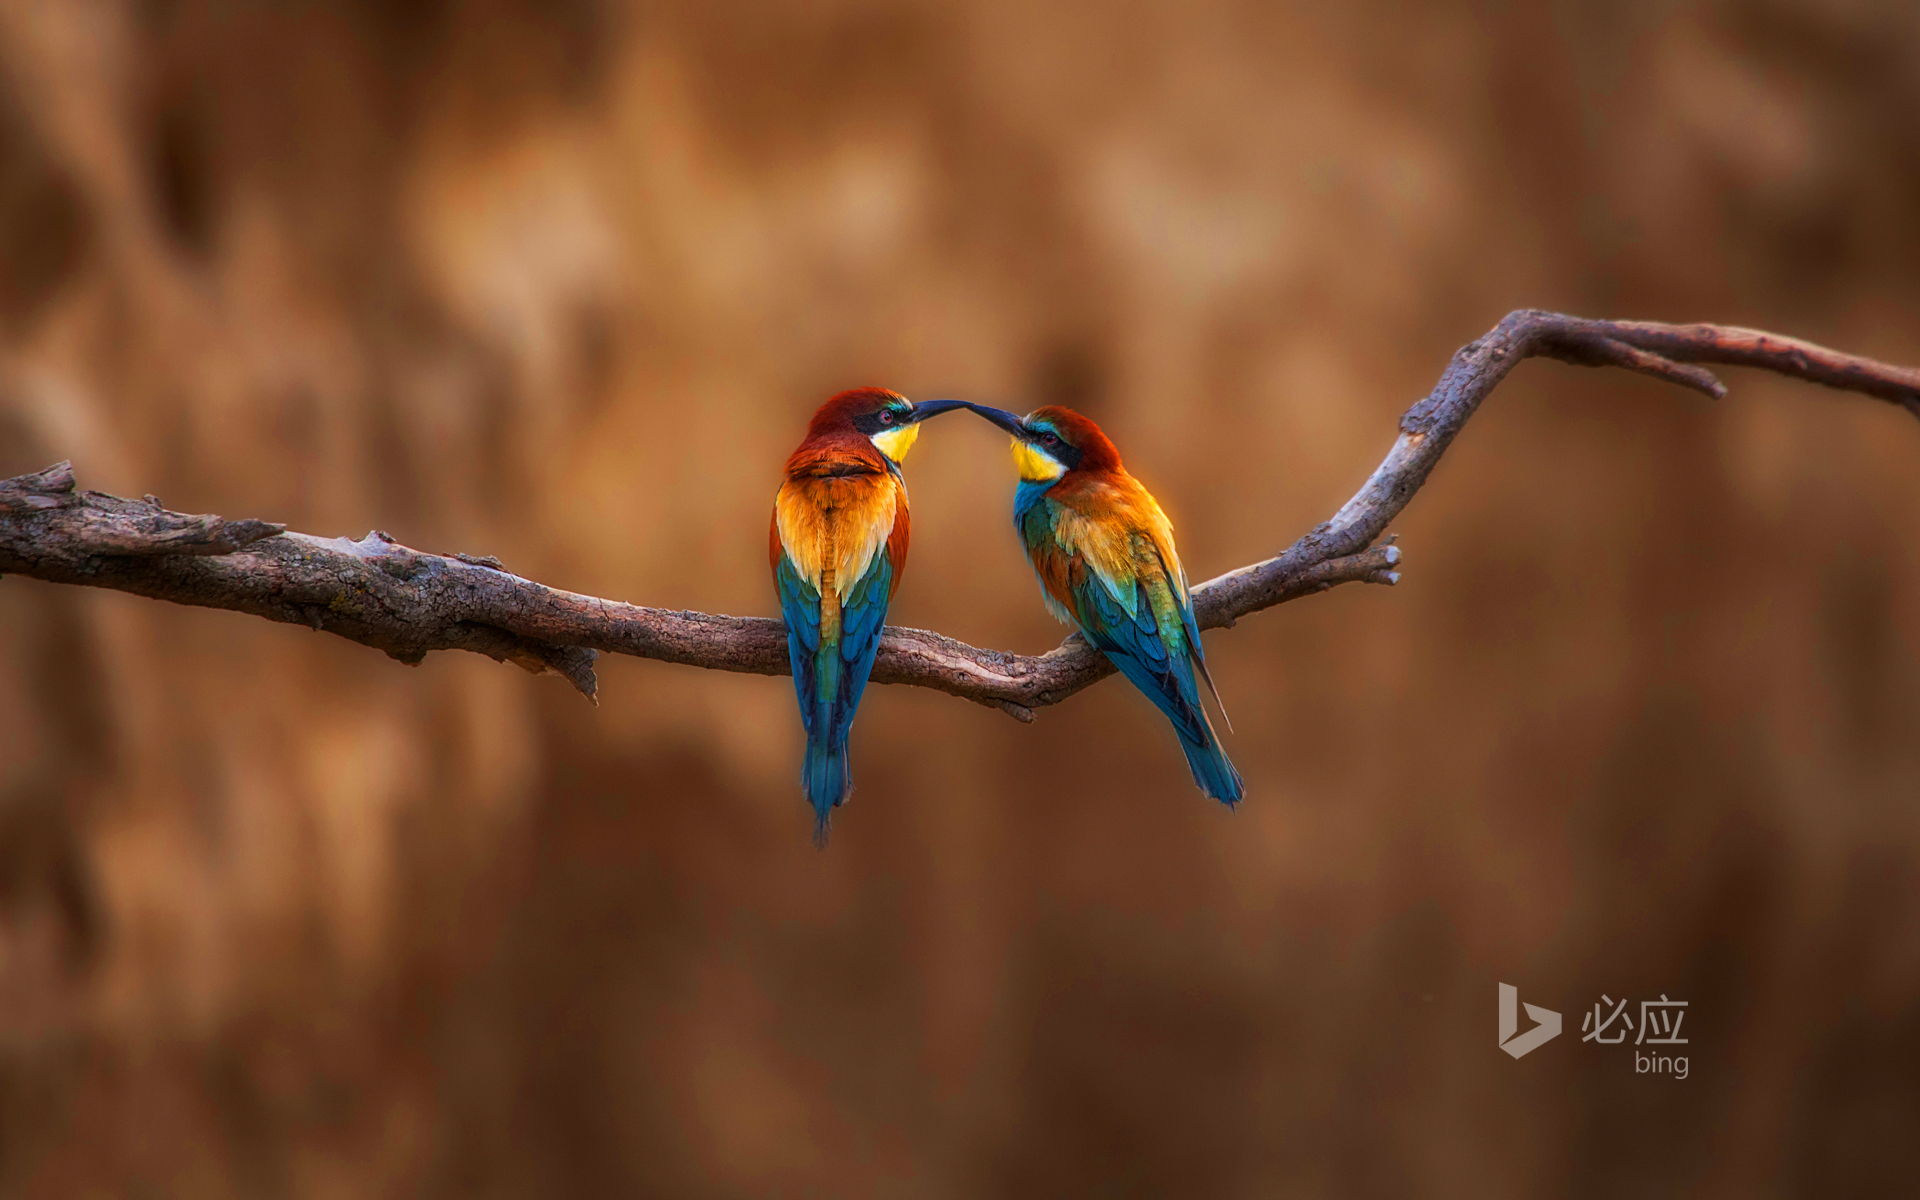 Two birds resting on a branch